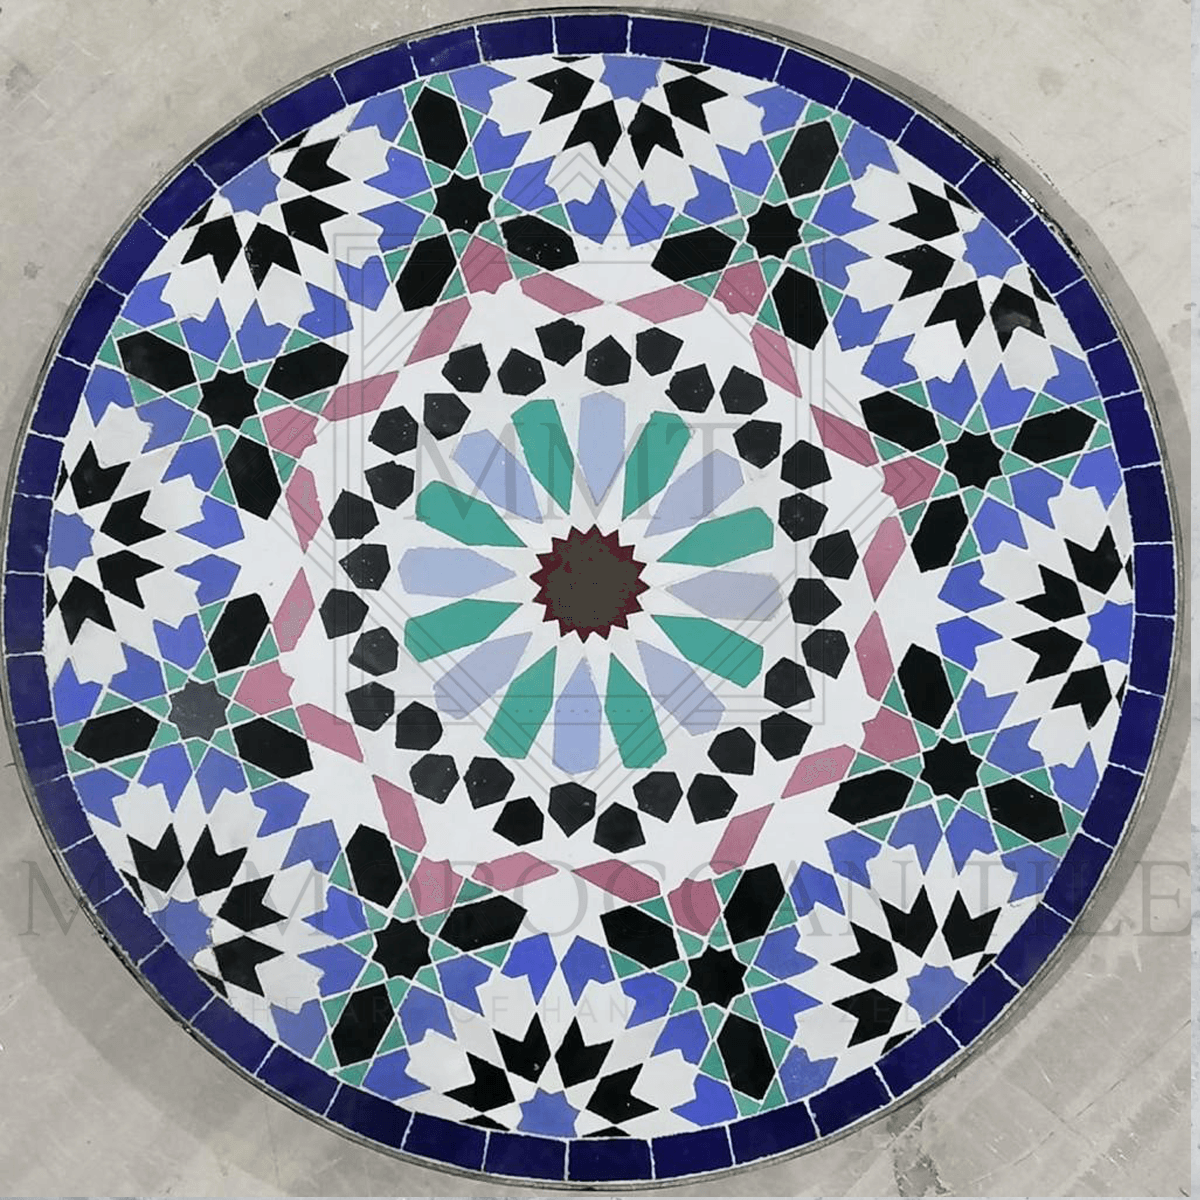 Handmade Moroccan Mosaic Table 2116-05